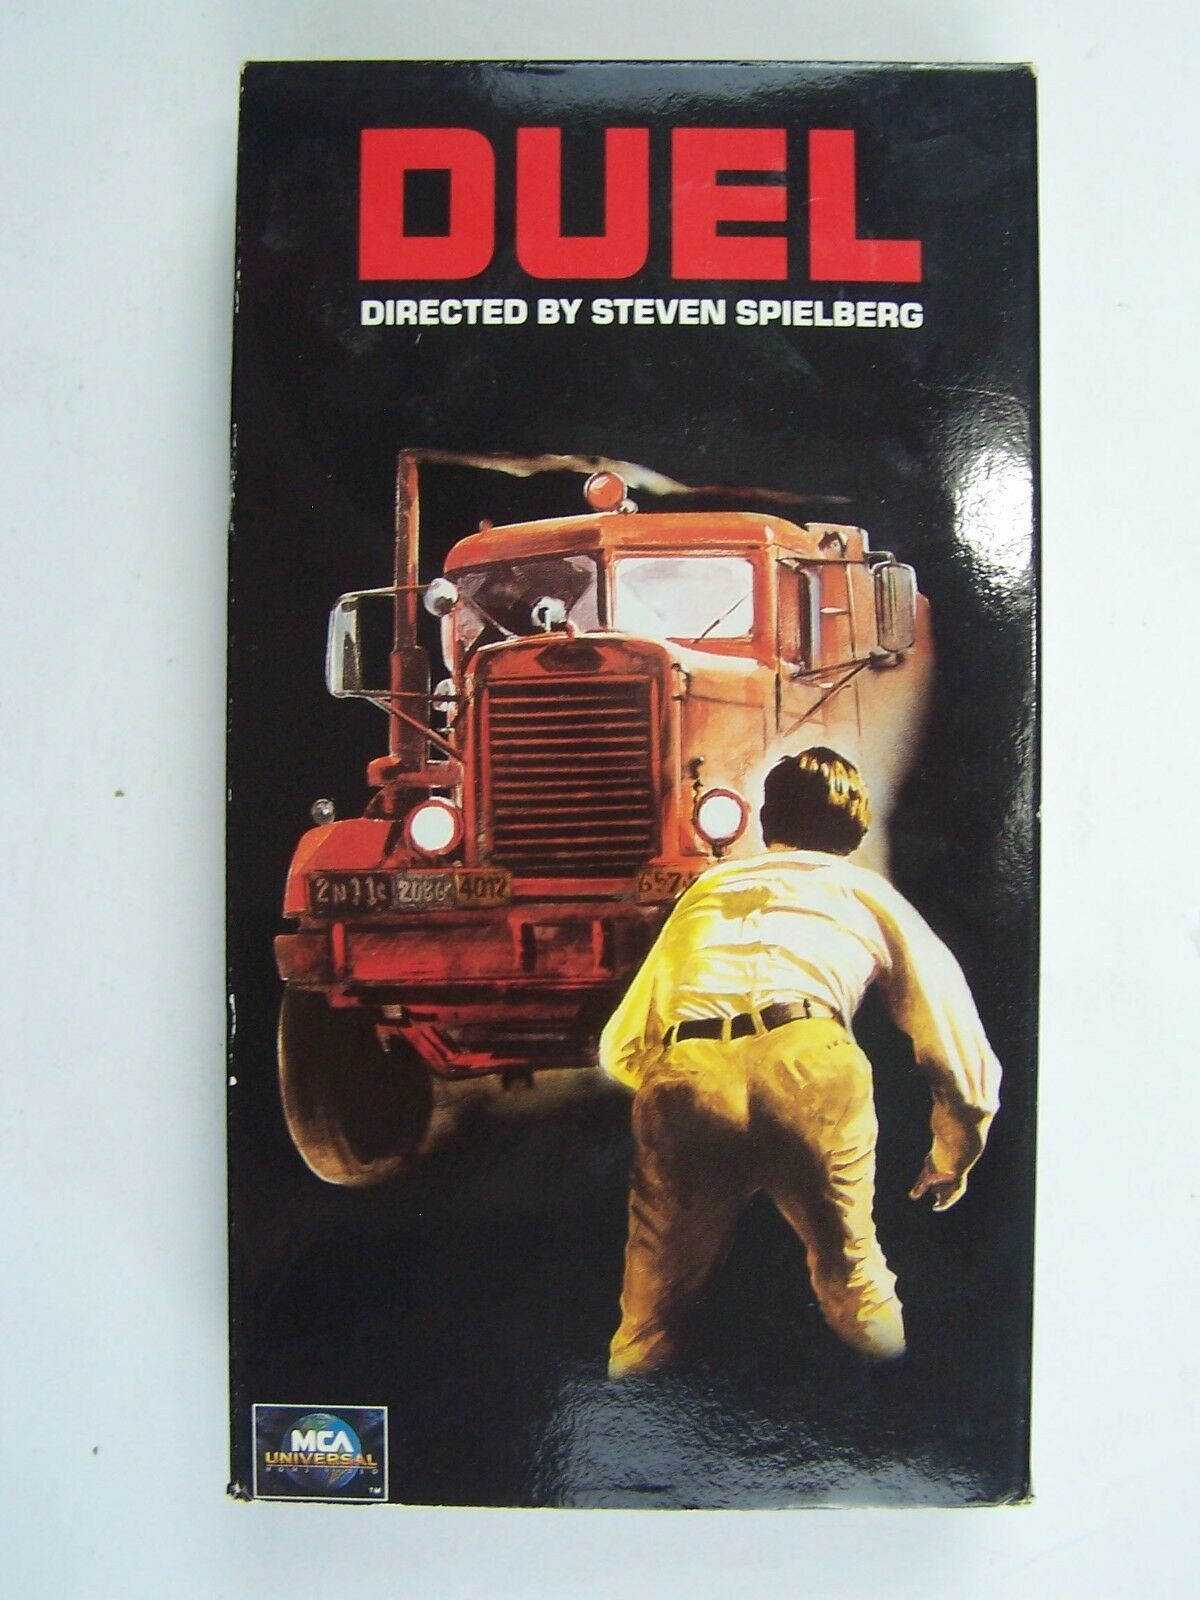 DUEL VHS Video Tape Dennis Weaver Steven Spielberg